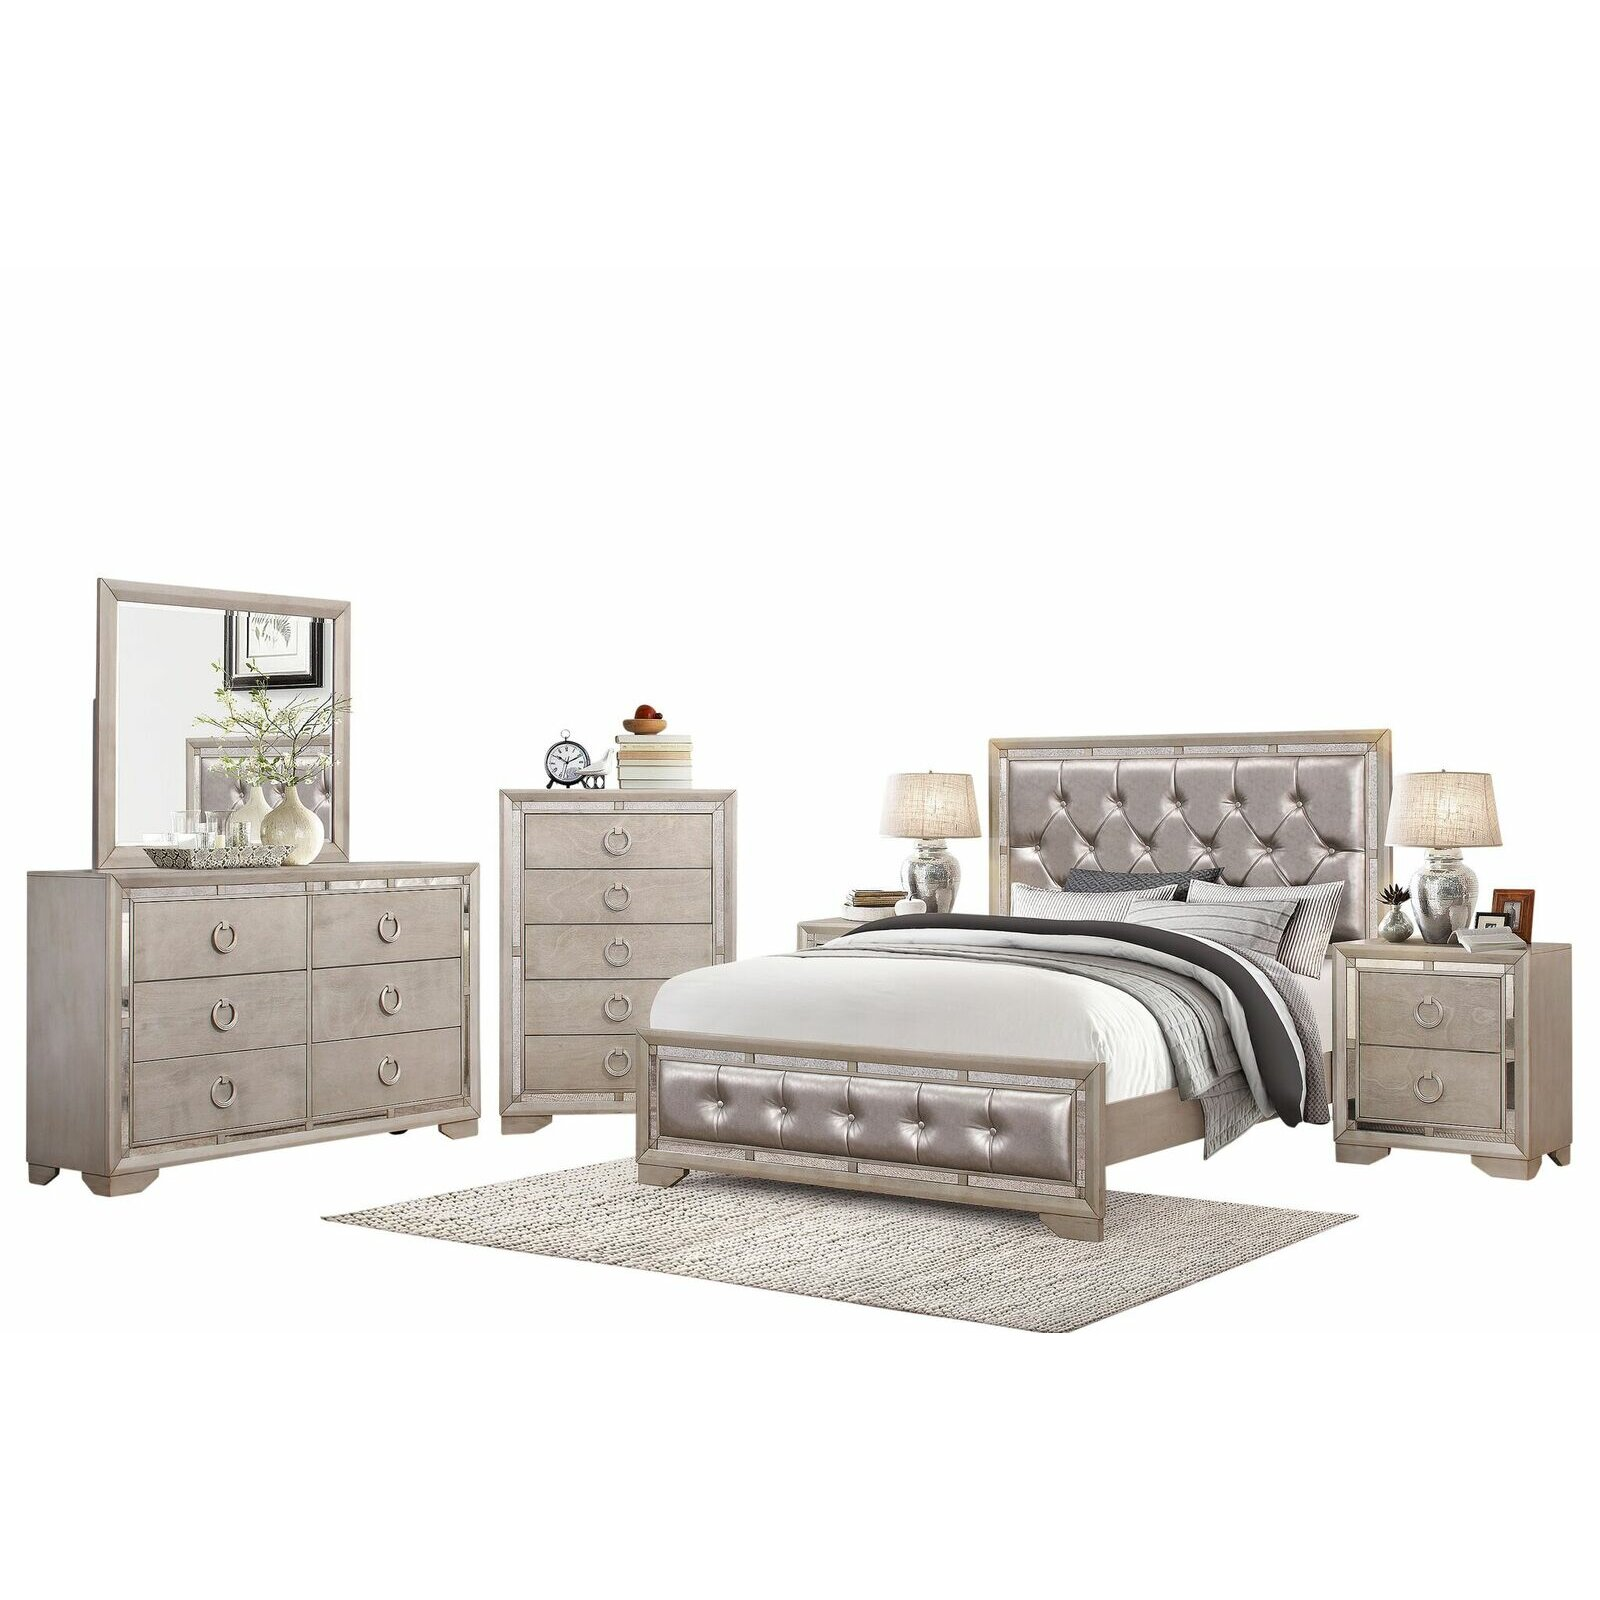 House Of Hampton June Panel 6 Piece Bedroom Set